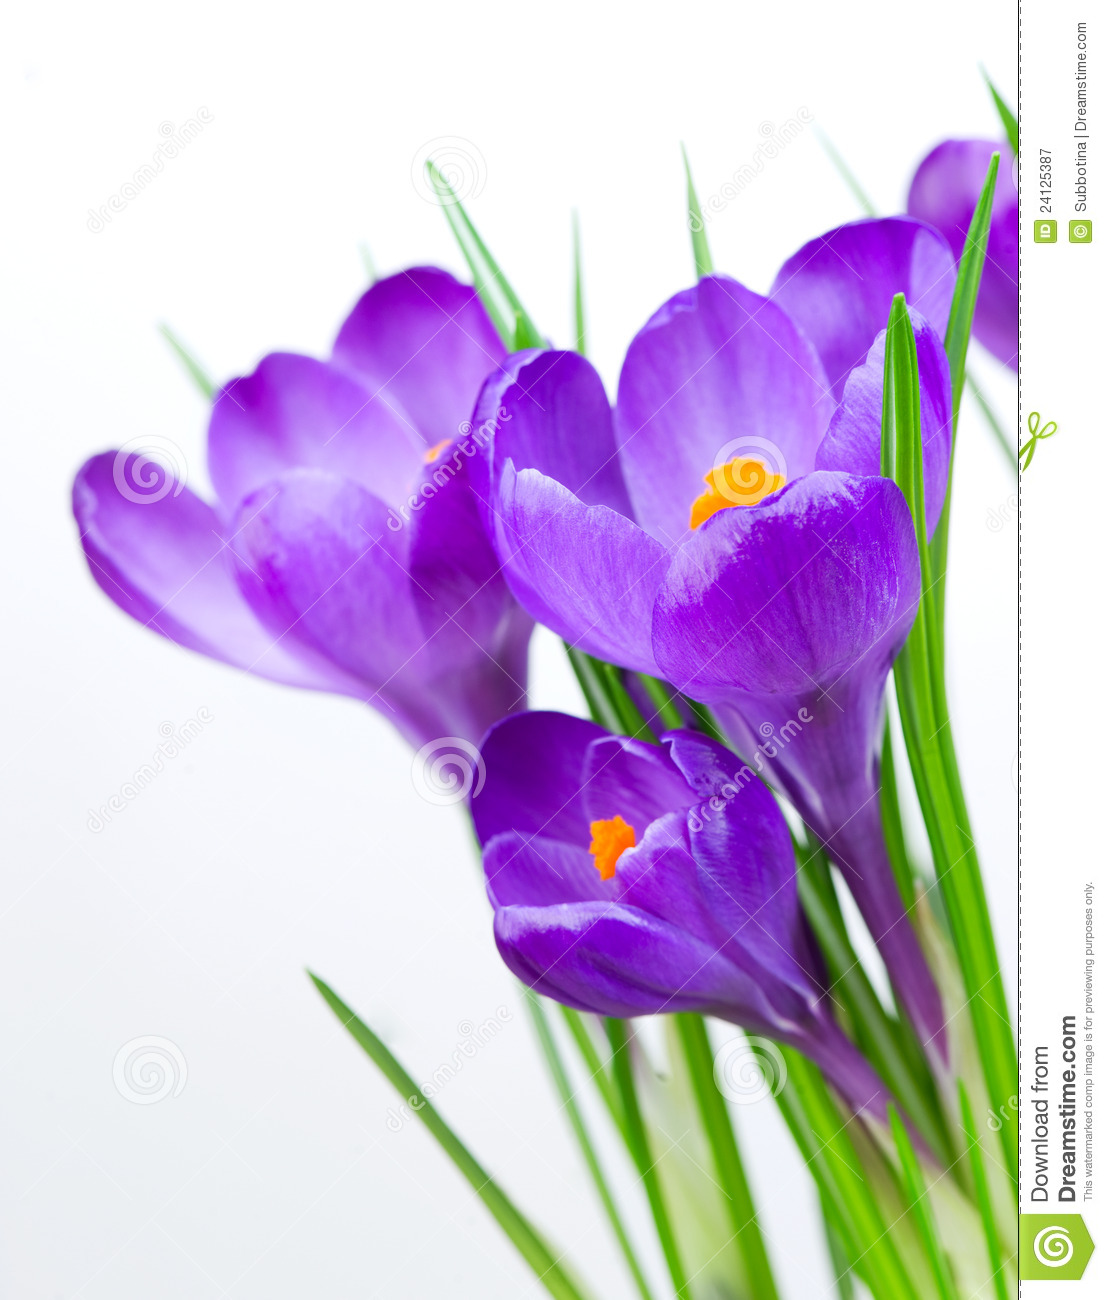 Crocus spring flowers stock image image of design growing 24125387 crocus spring flowers mightylinksfo